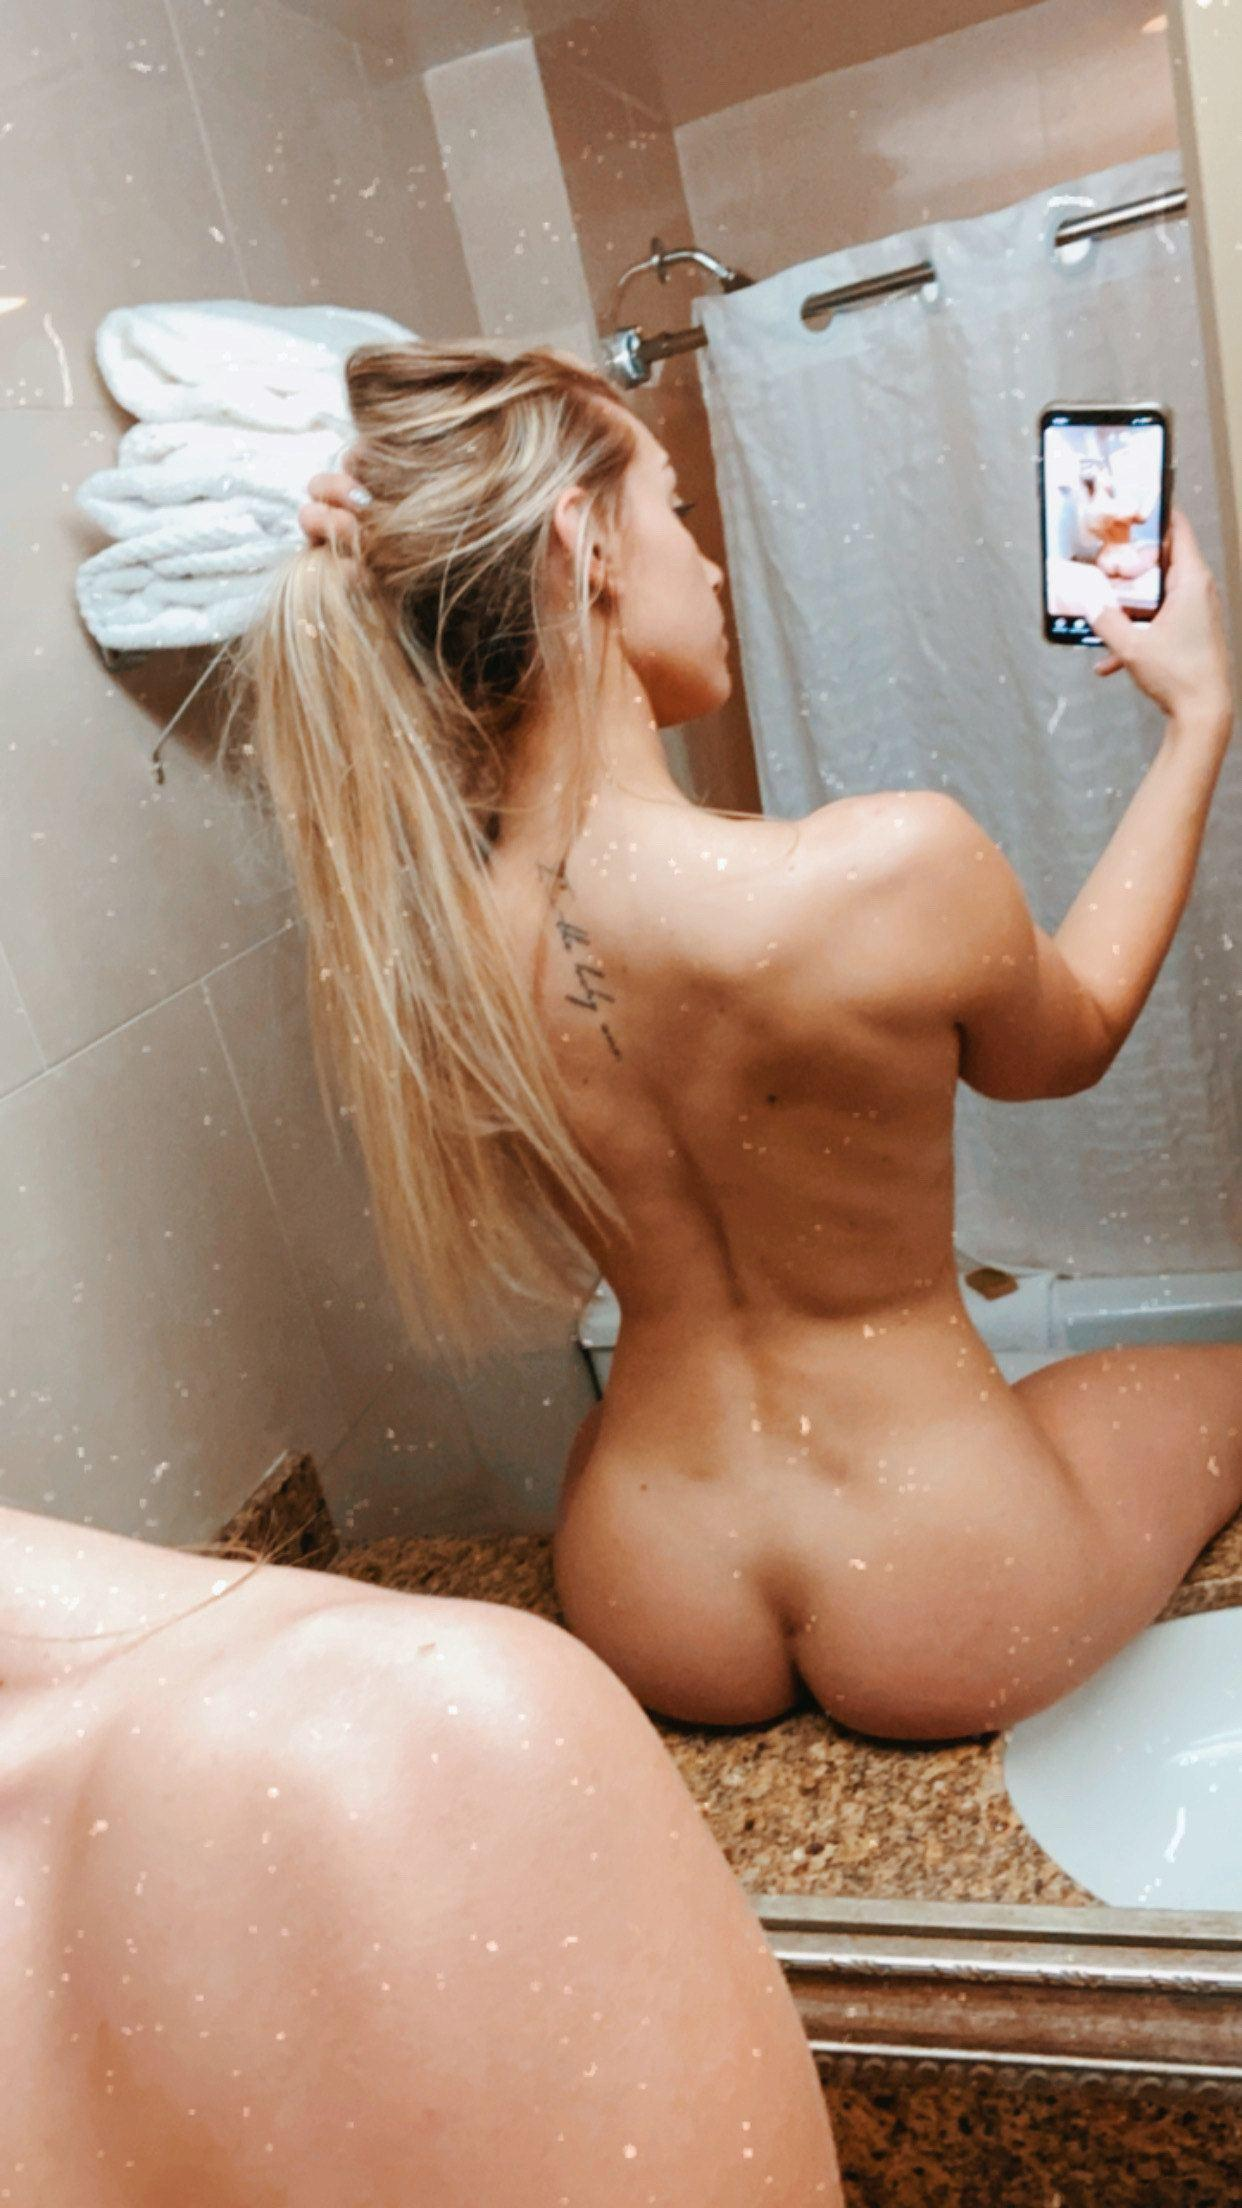 Therealbrittfit Nude Onlyfans Picture Set Leaked 0007